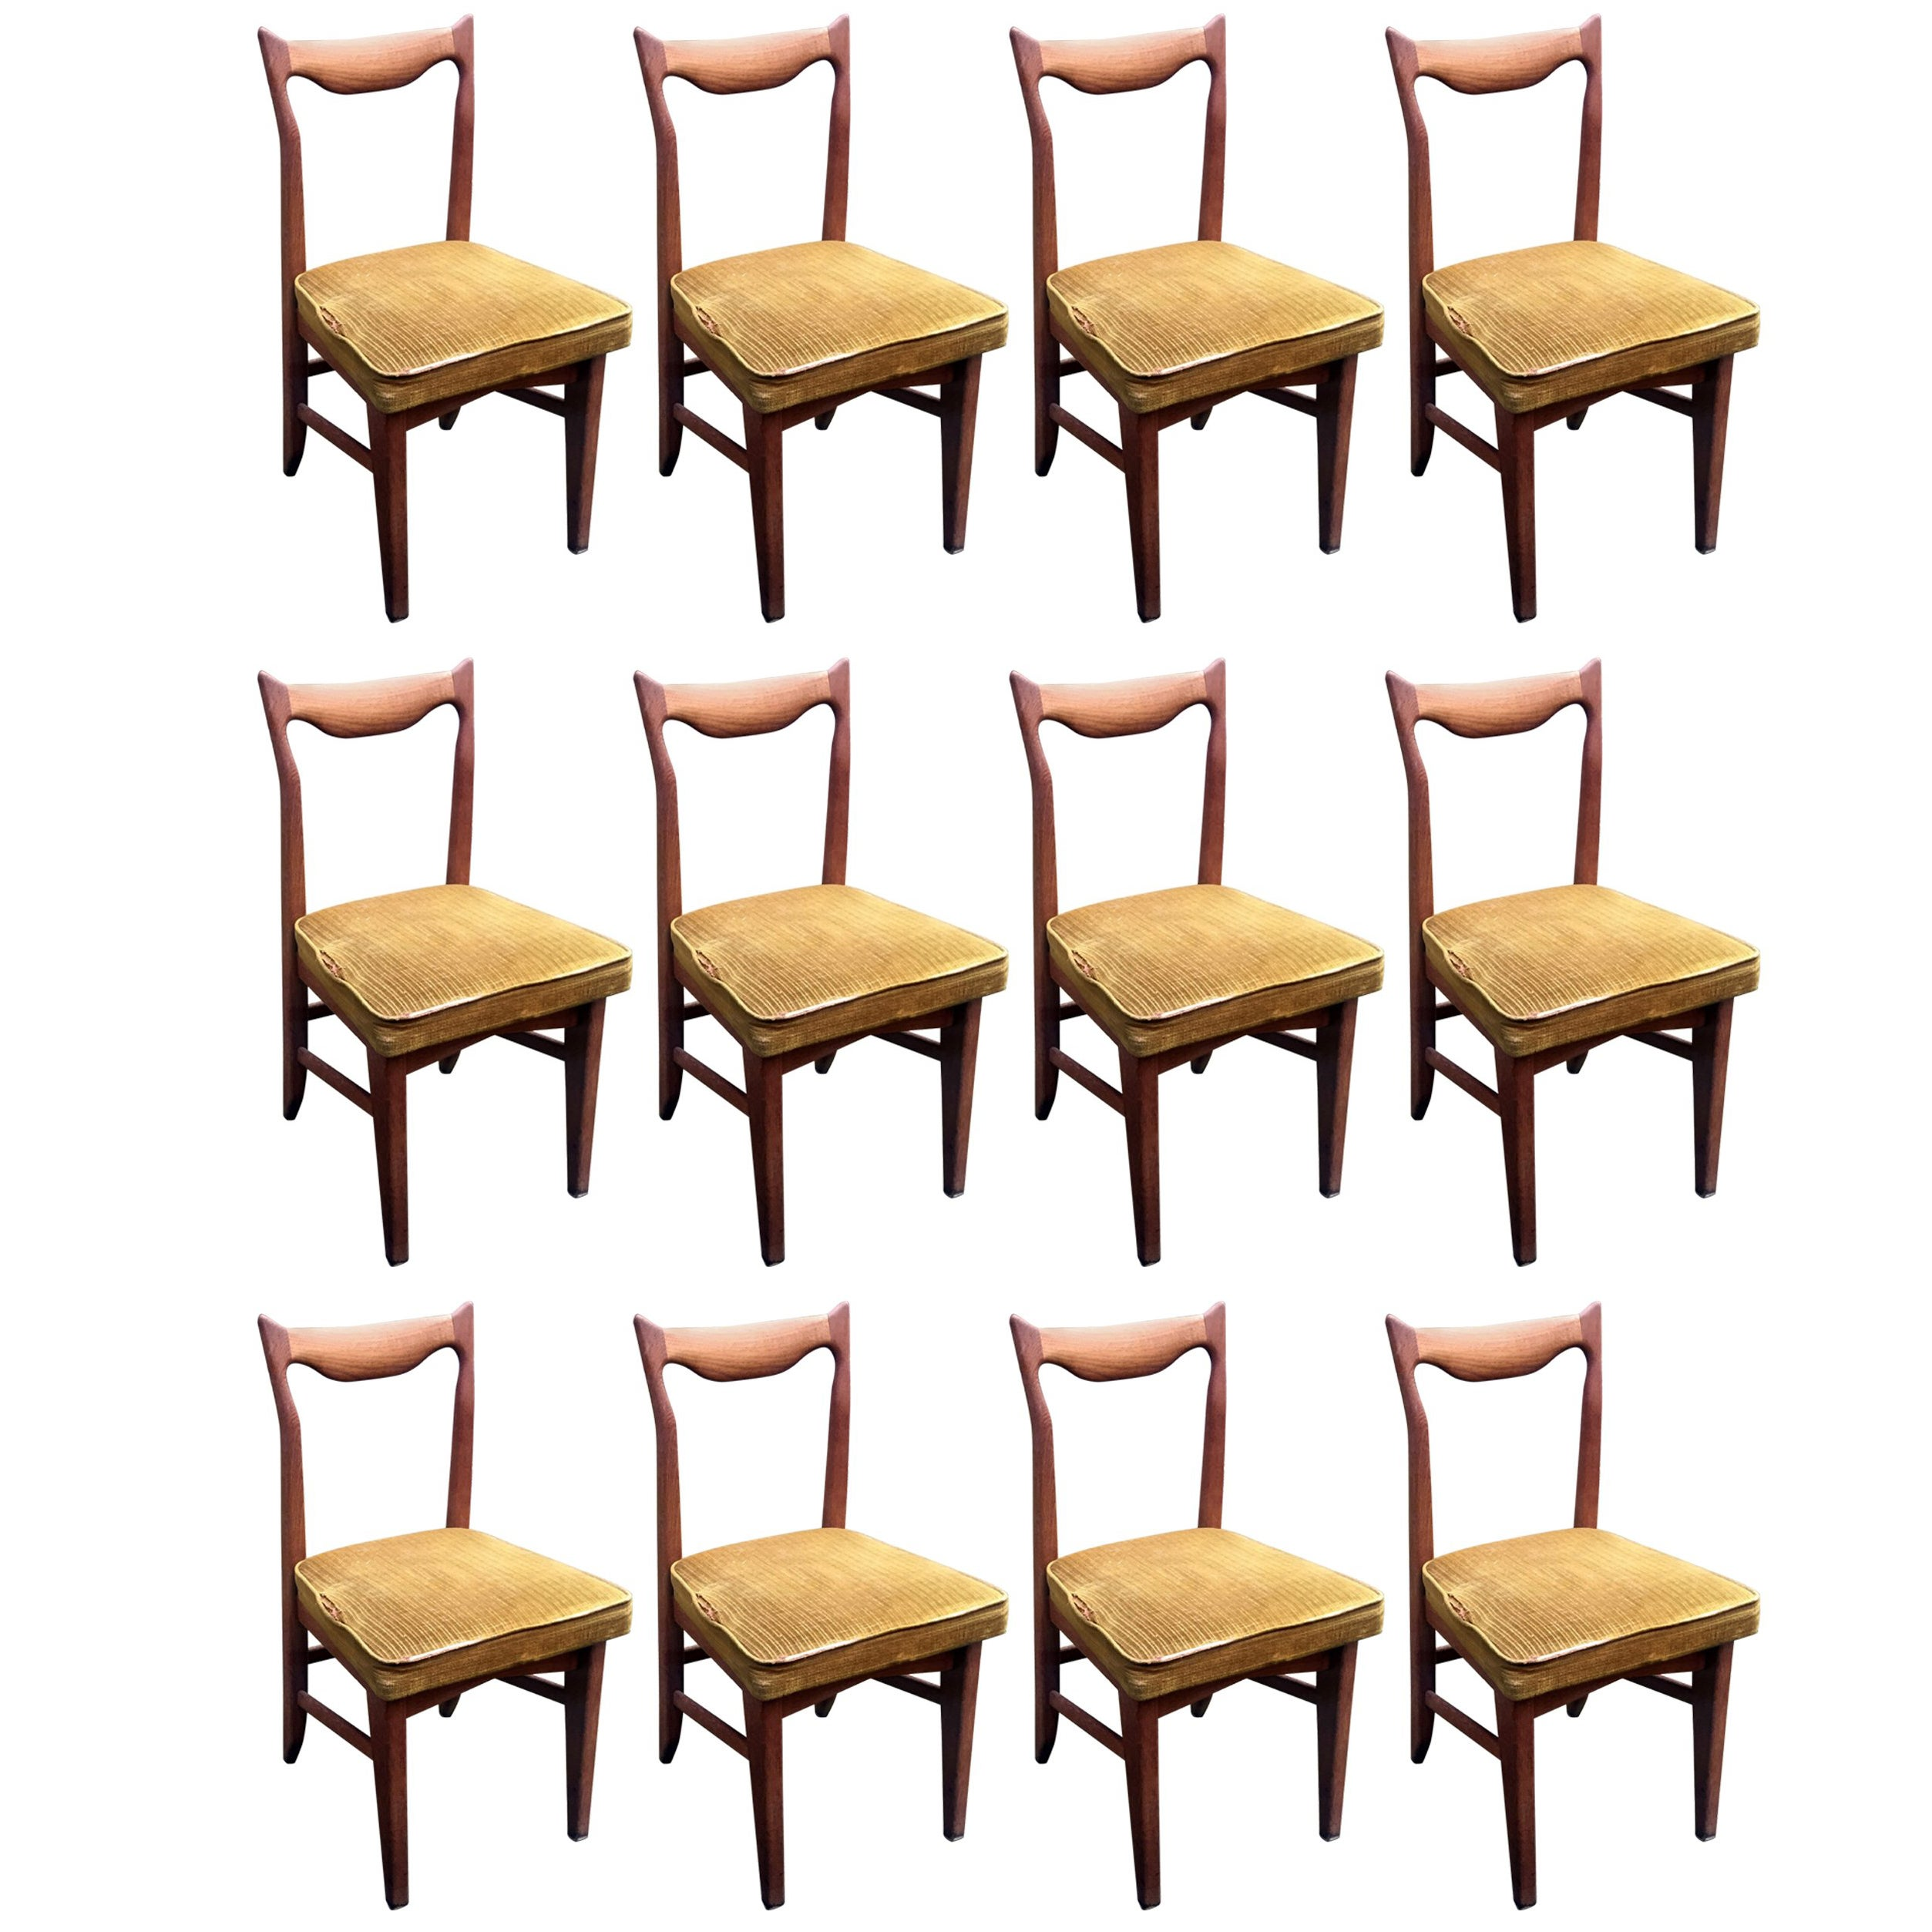 Guillerme et Chambron  12 Oak Dining Chairs, circa 1965